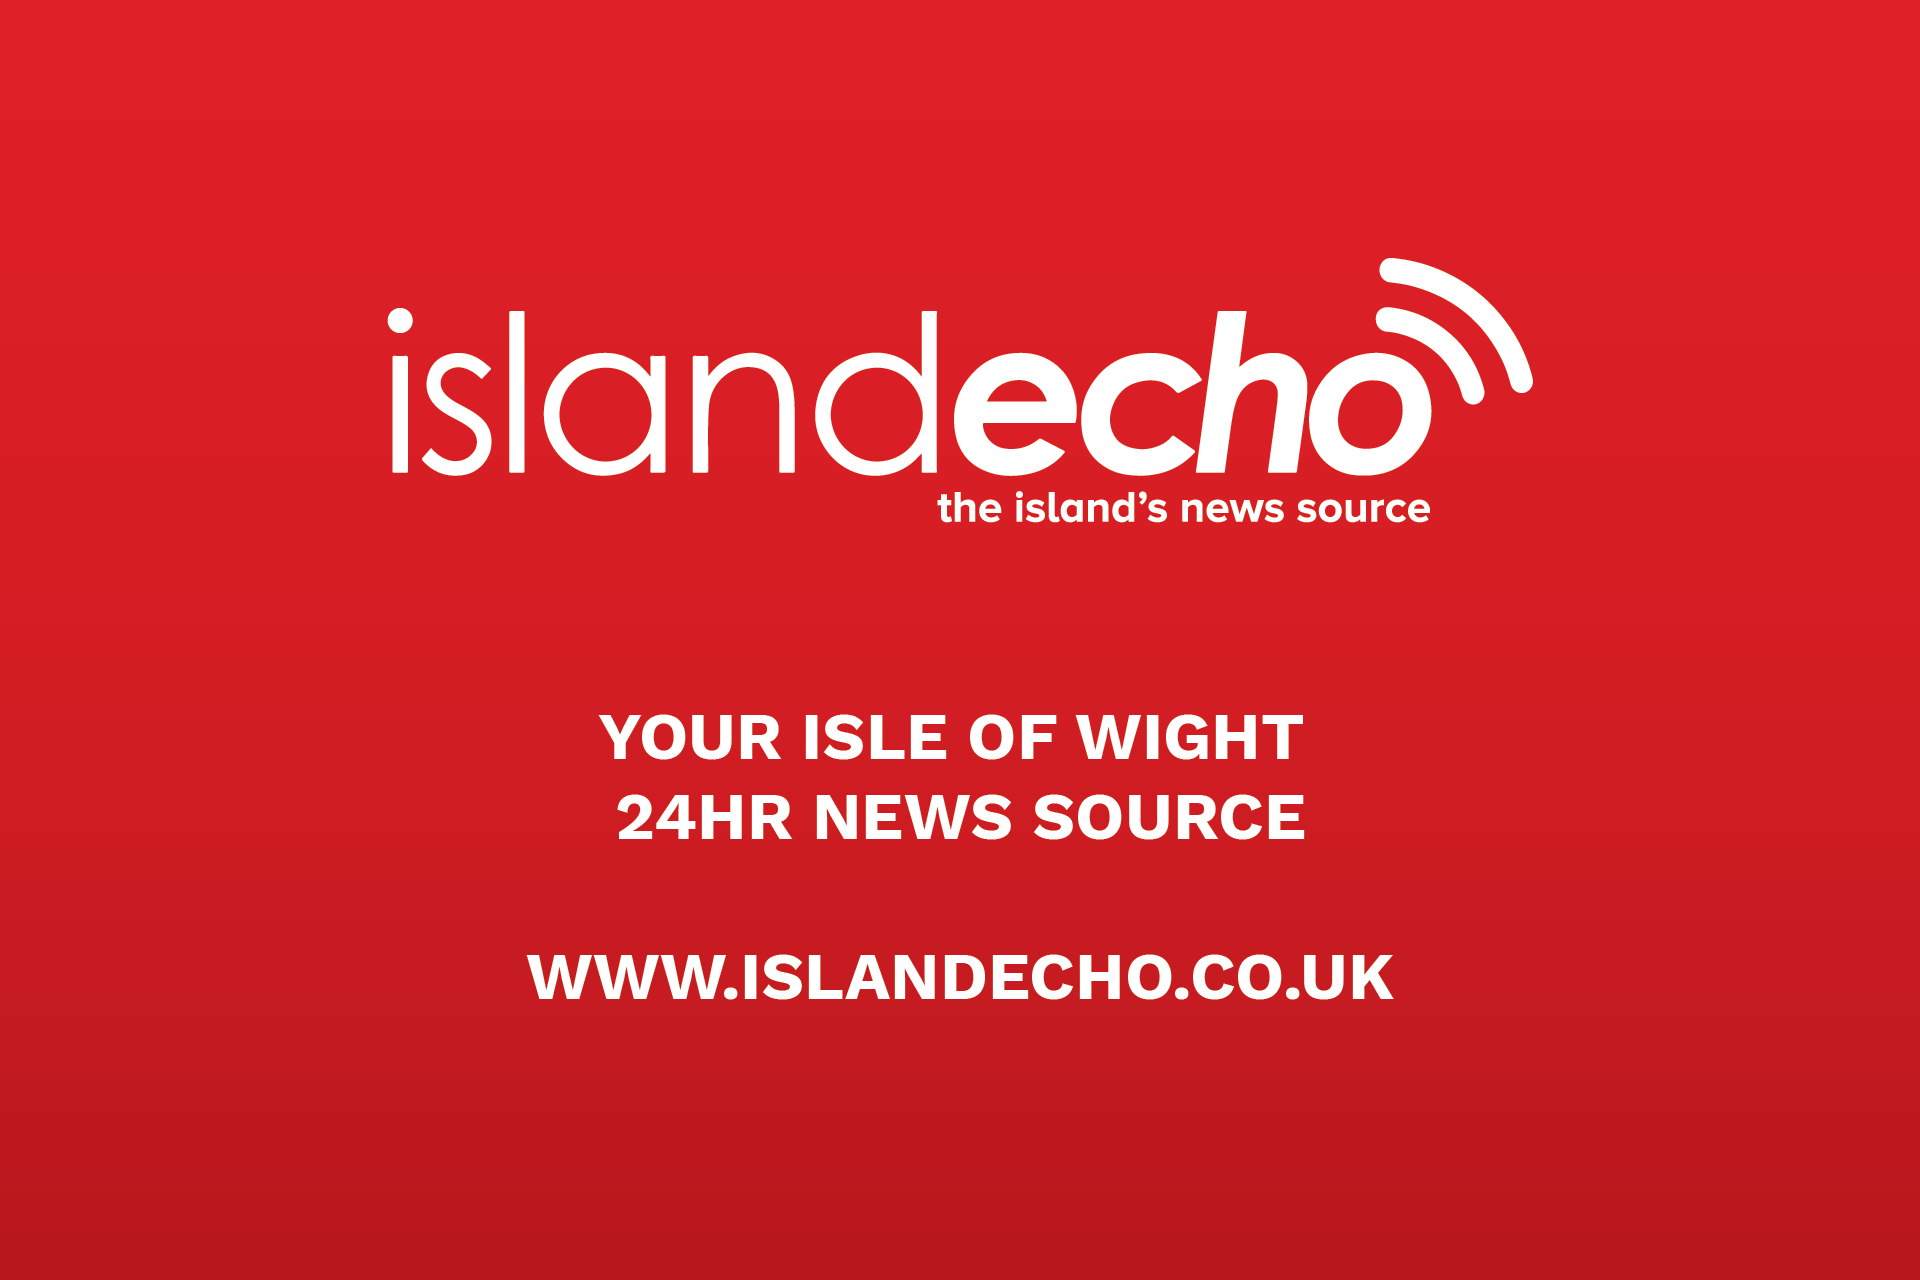 Island Echo - Latest Isle of Wight news, weather, travel and